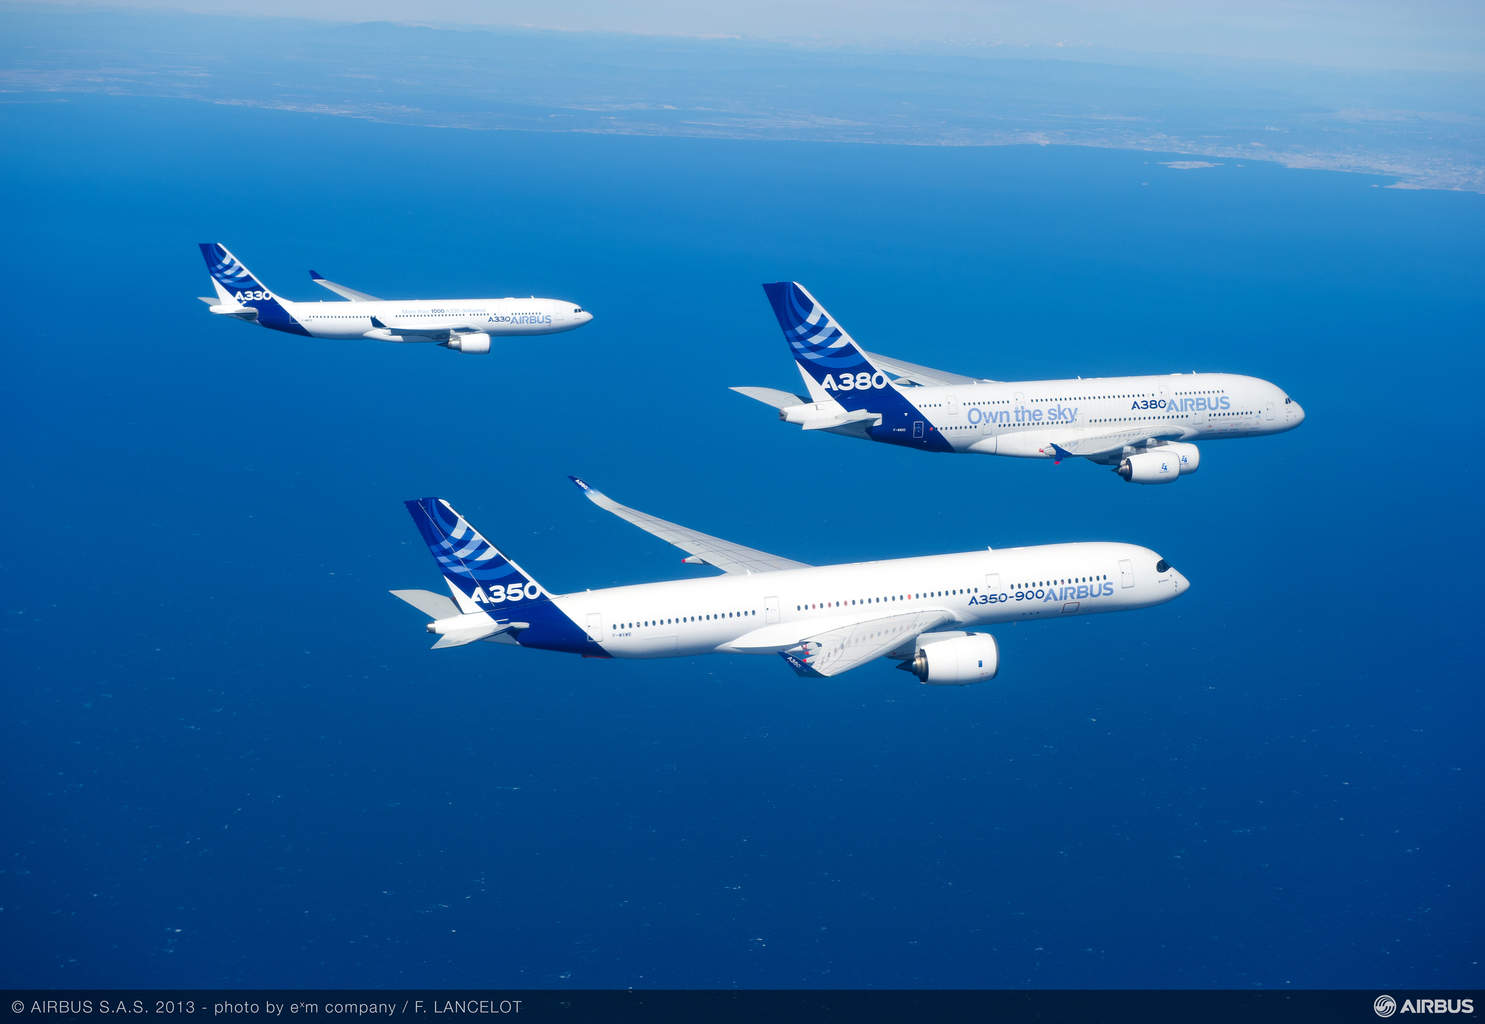 Airbus looks into Live Data Streaming to avoid disappearing planes